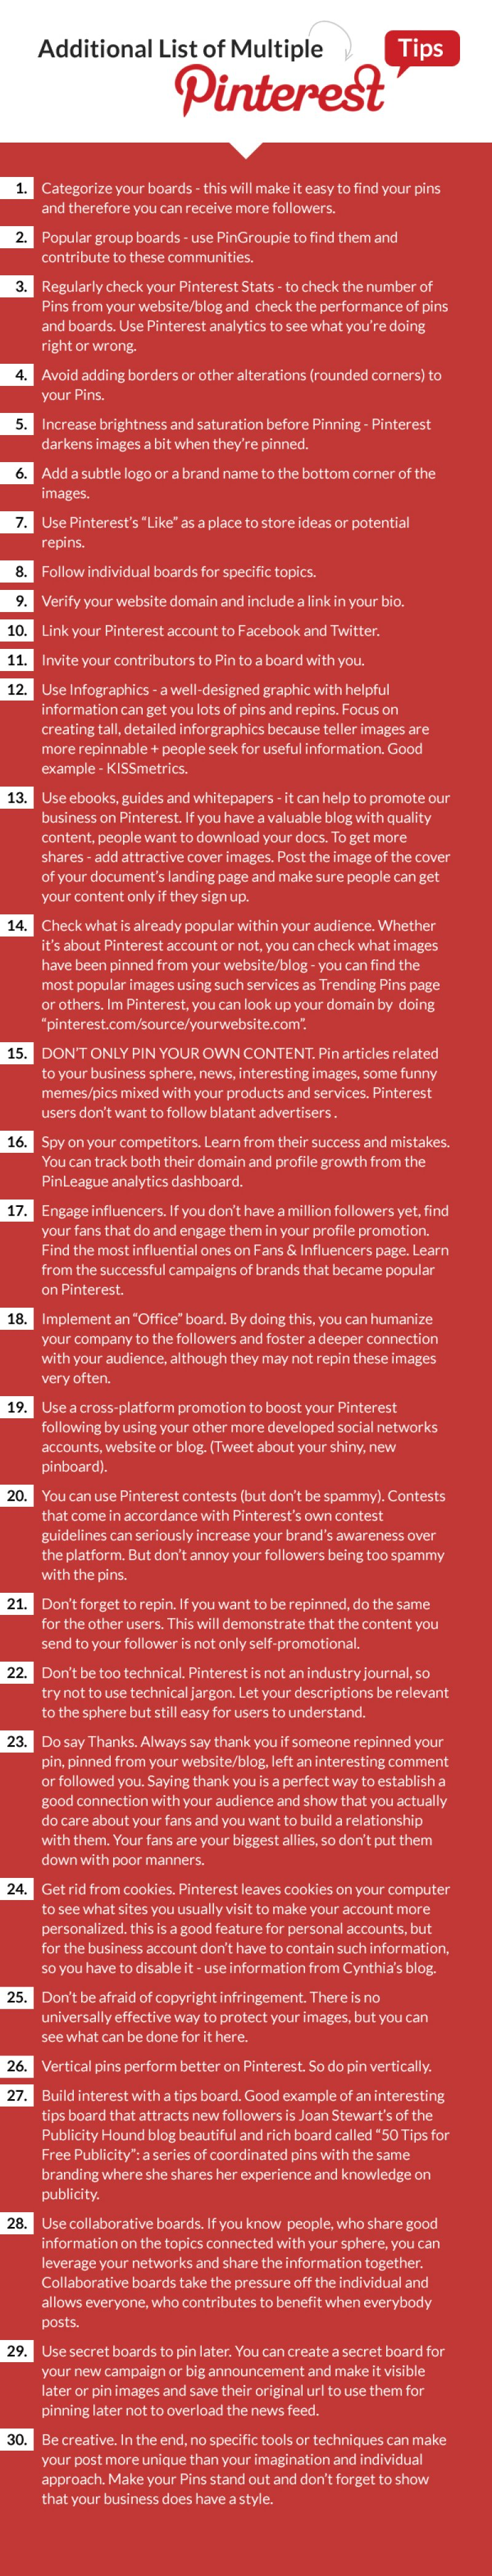 Top Pinterest Tips For Your Marketing Strategy